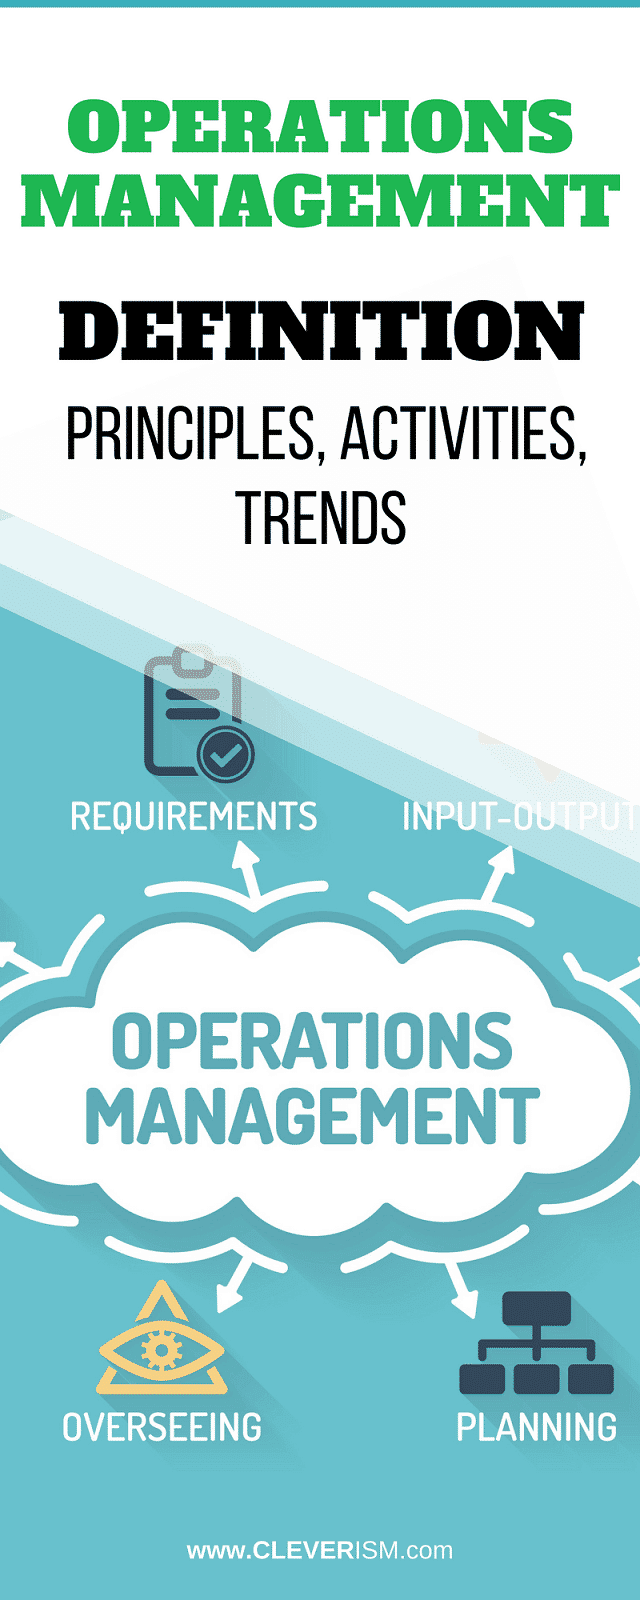 Operations Management Definition Principles Activities Trends